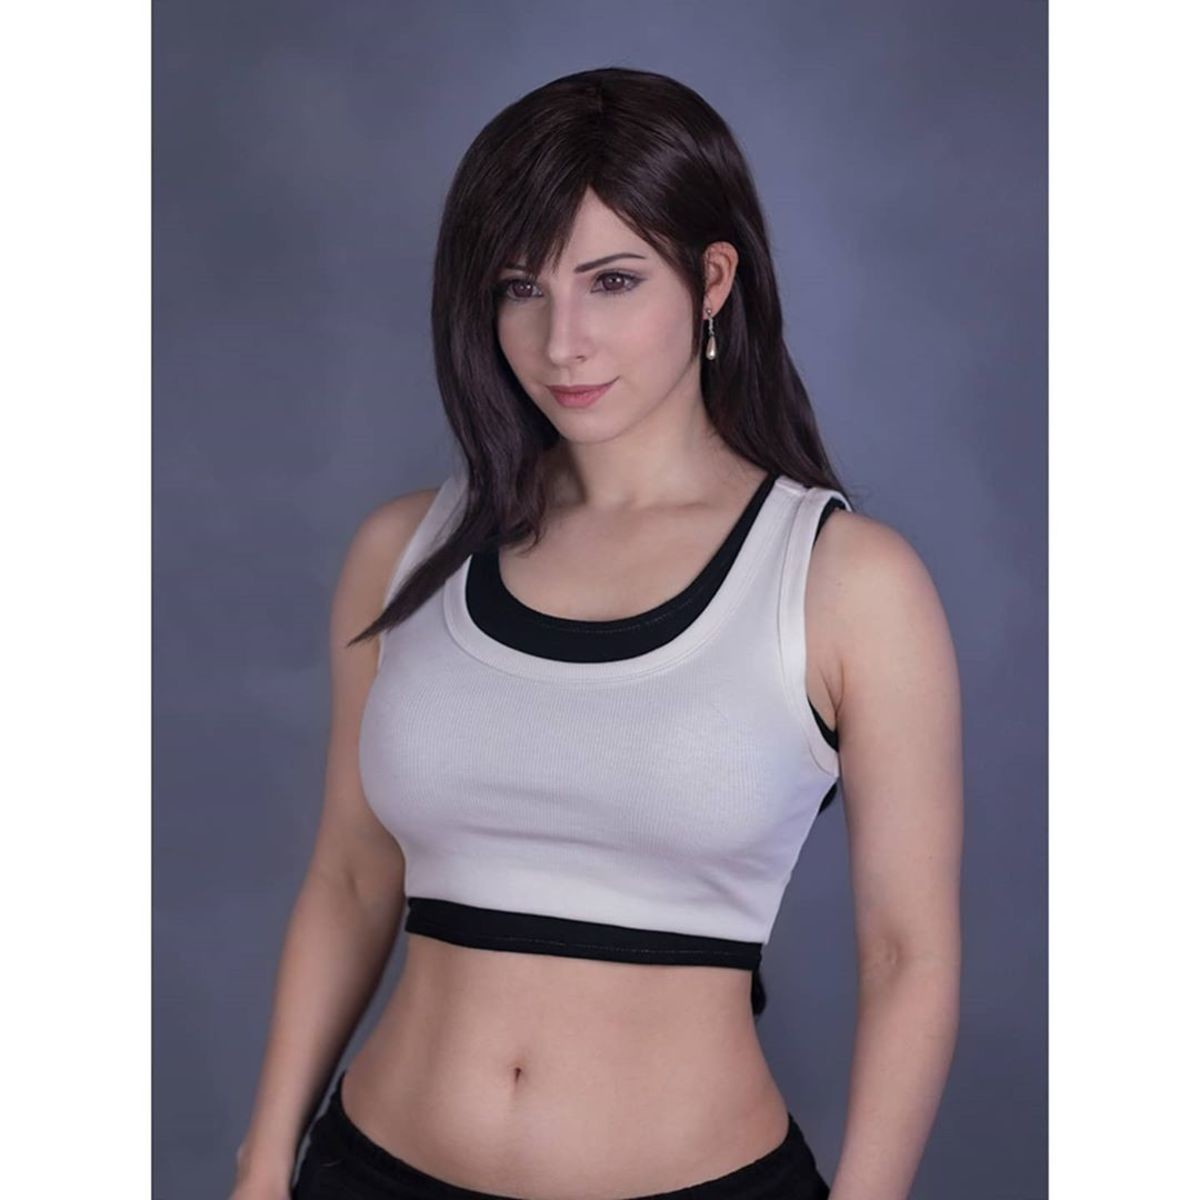 Tifa Lockhart by Enji ht. .. For a moment I thought this was from the same source as that 3d one where she makes her own boobs bigger